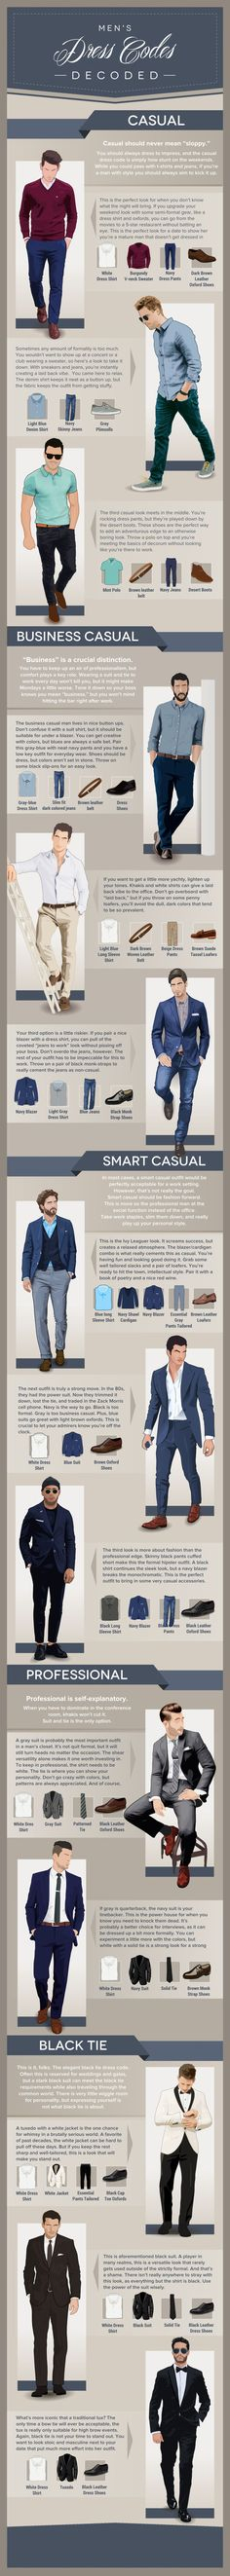 Men's Dress Codes Infographic Mens fashion Infographic Ultimate Graphics Designs is your one stop shop for all your Graphics And Video Solutions!